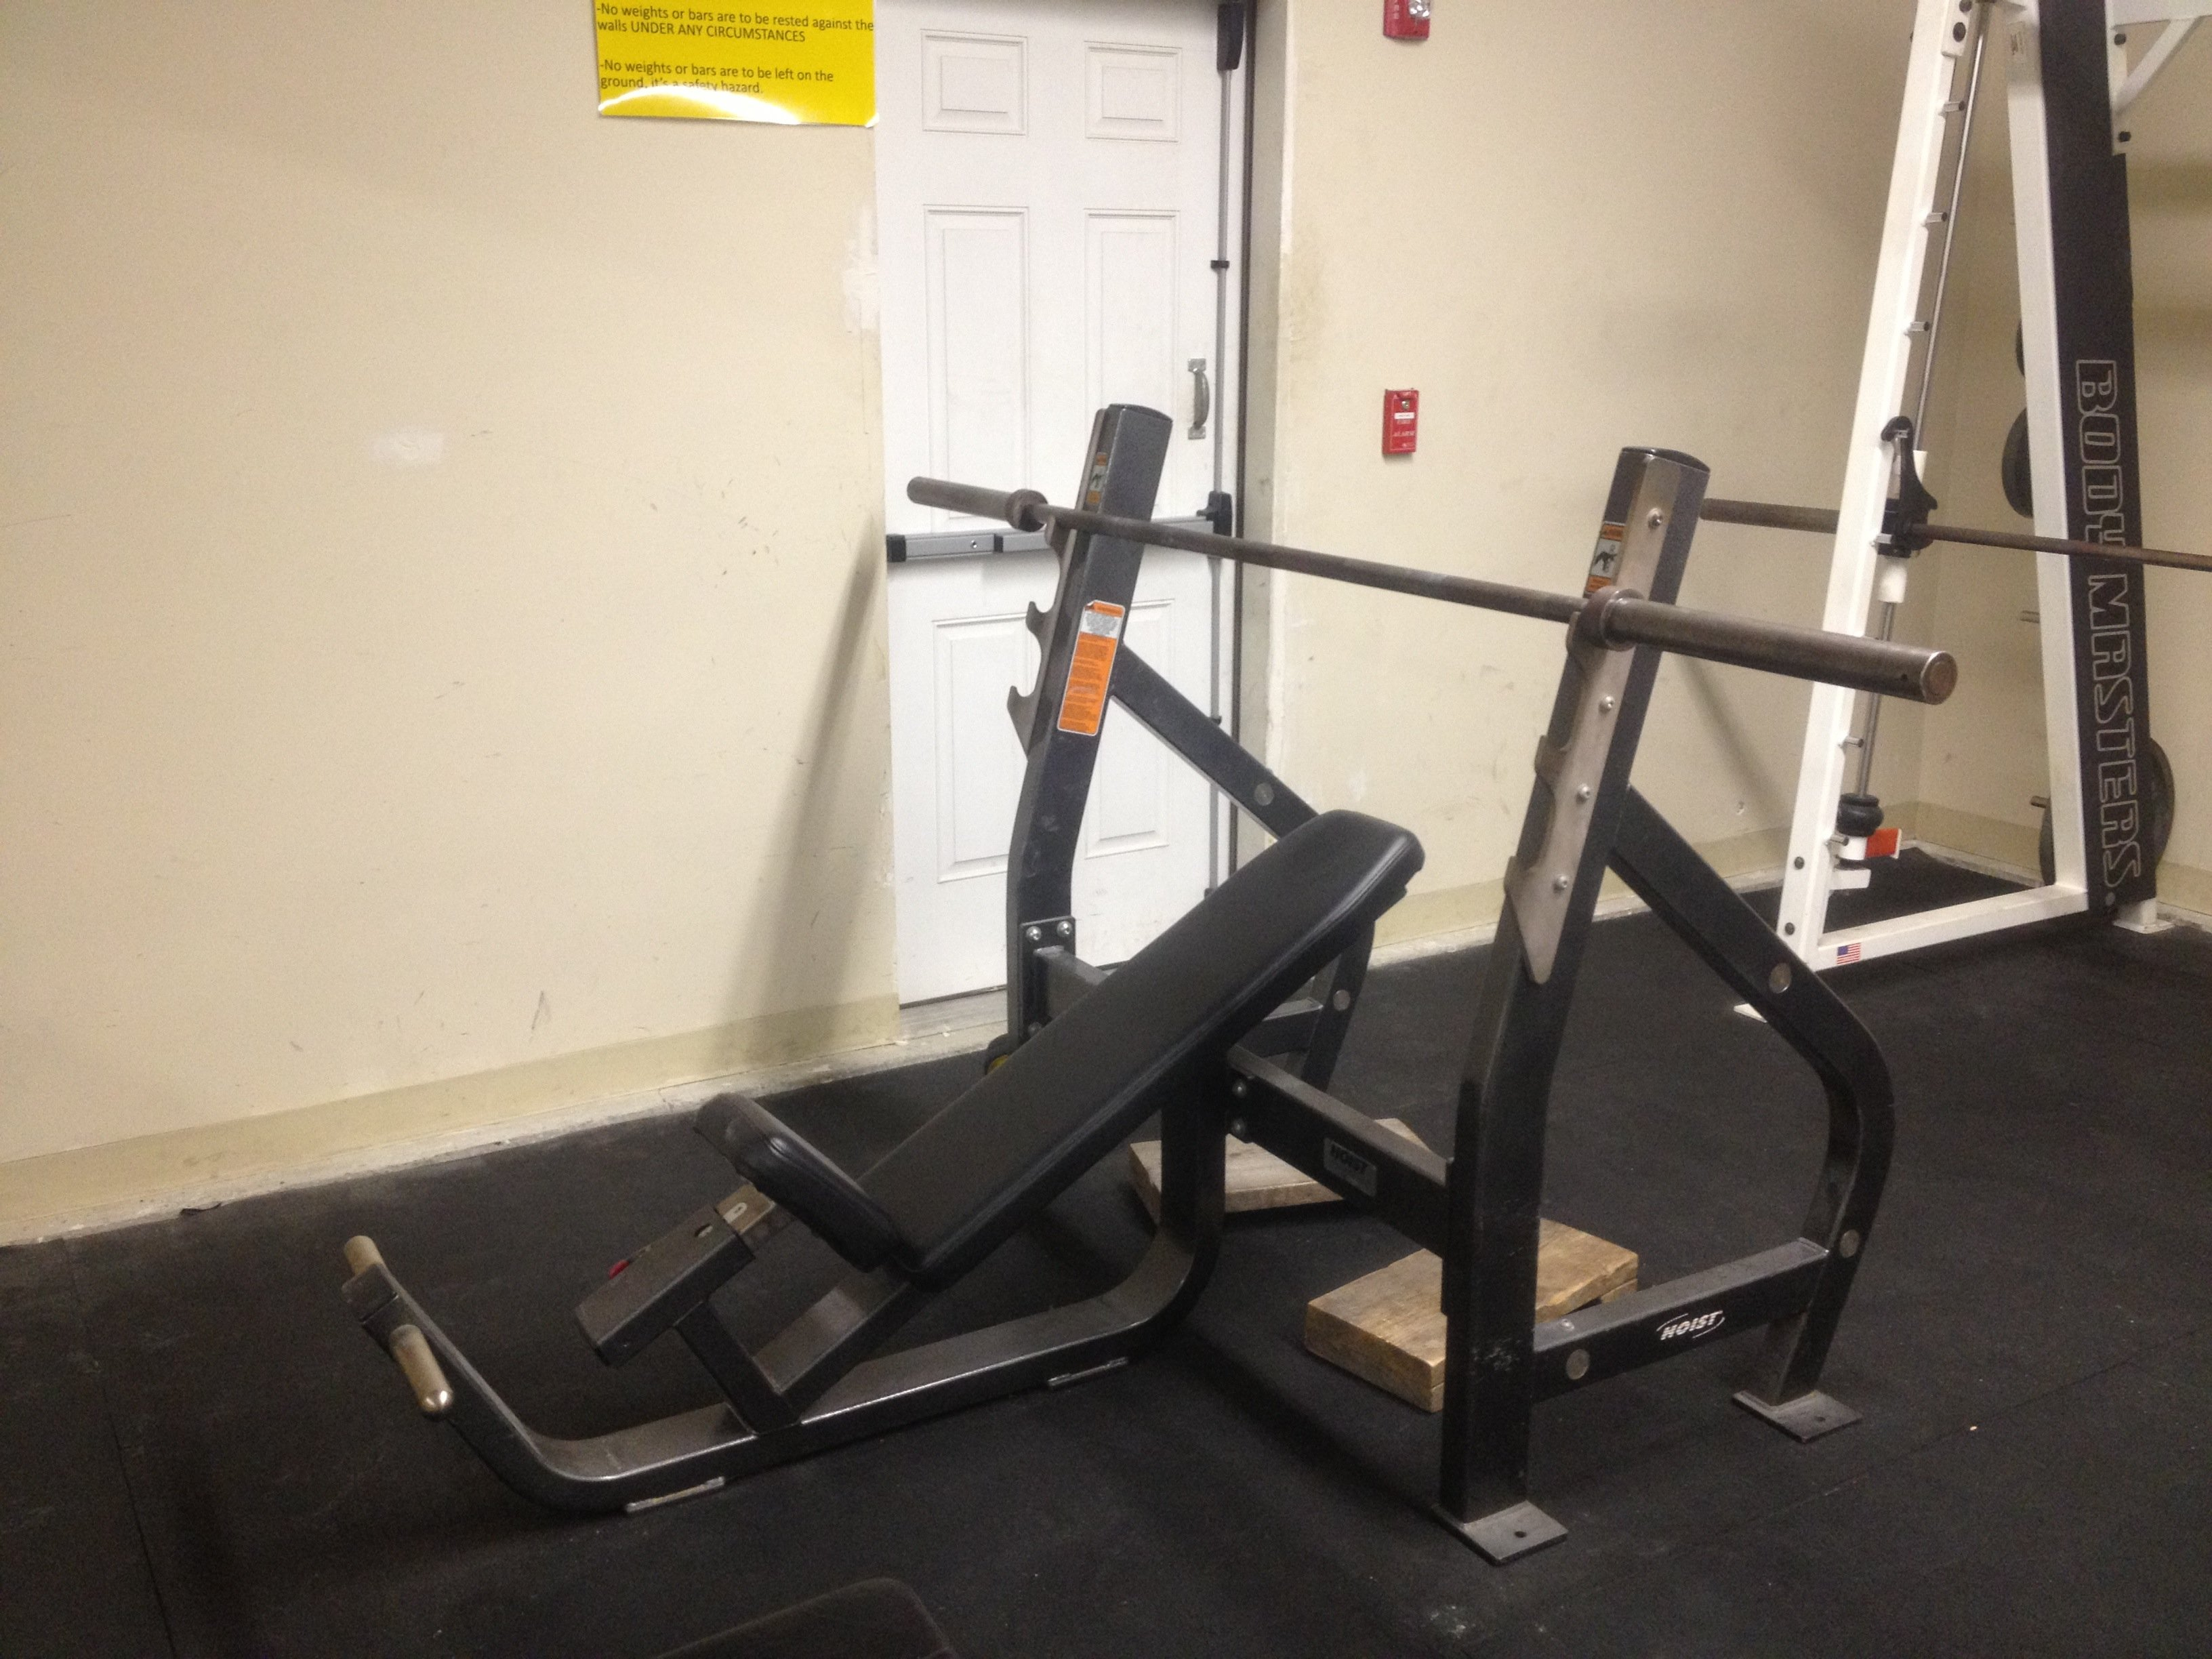 right workout easy set weight used olympic bench additional of the with fitness picking